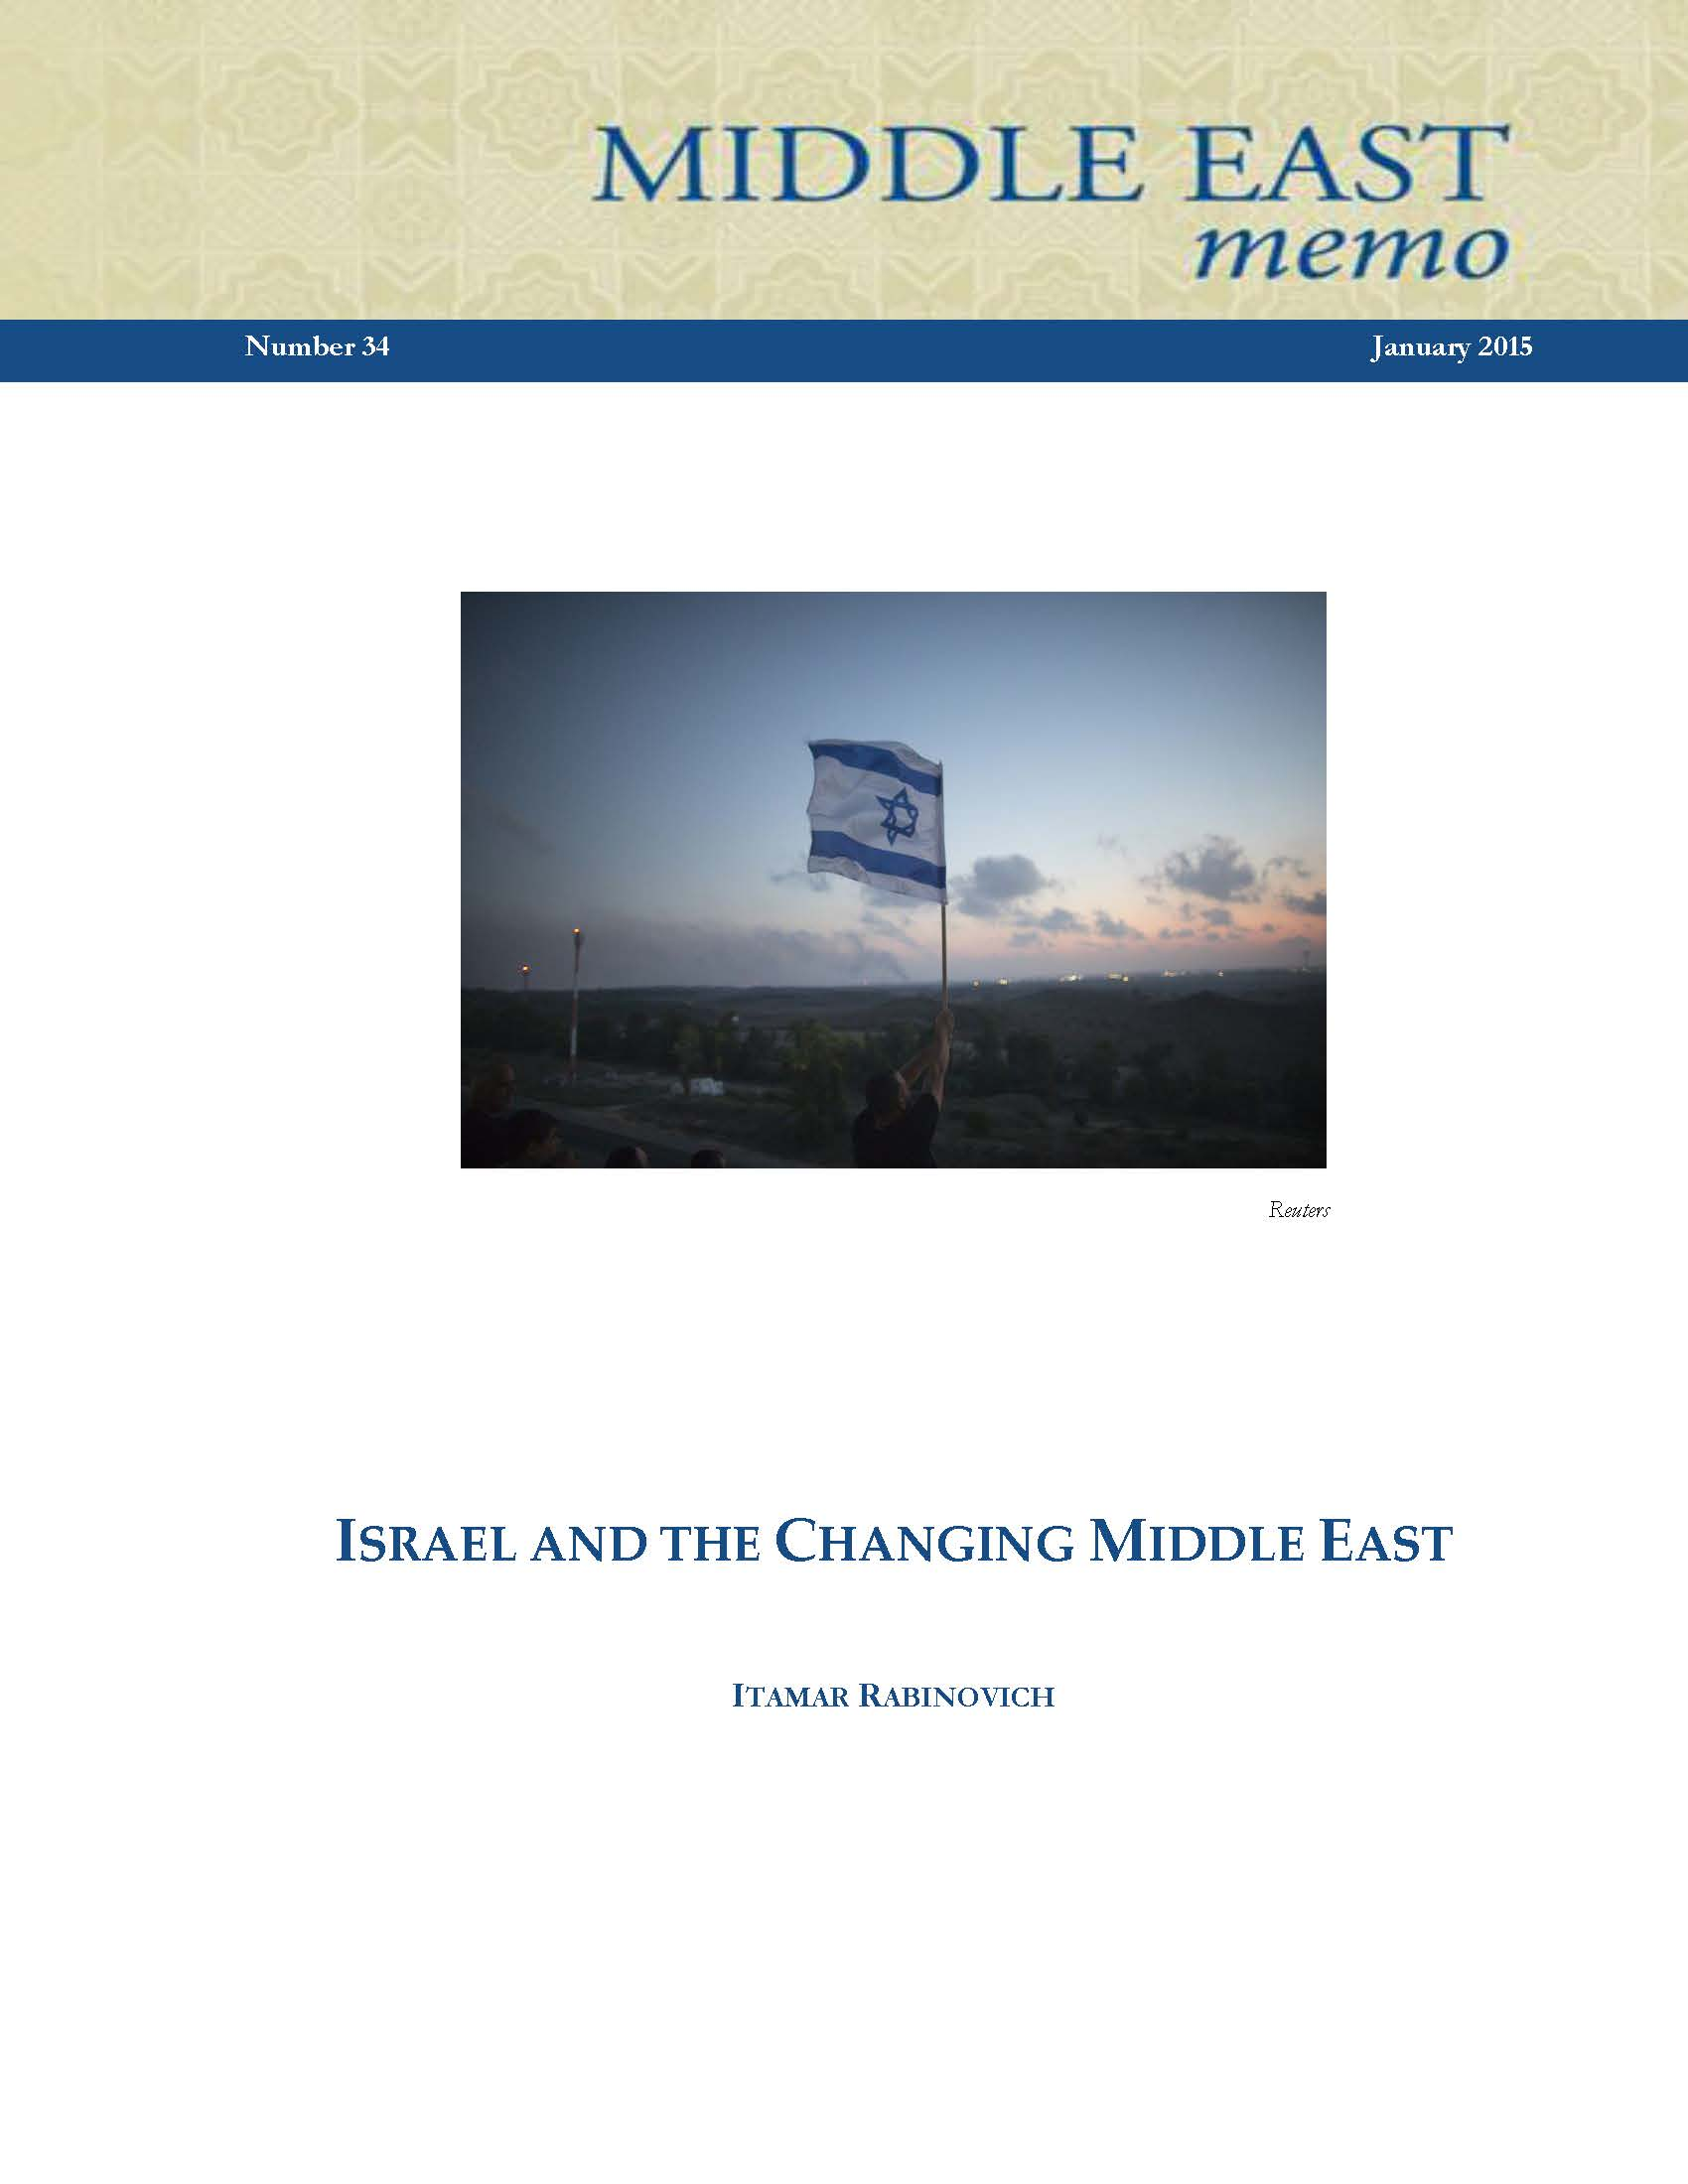 and the changing middle east pages from rabinovich 01292015